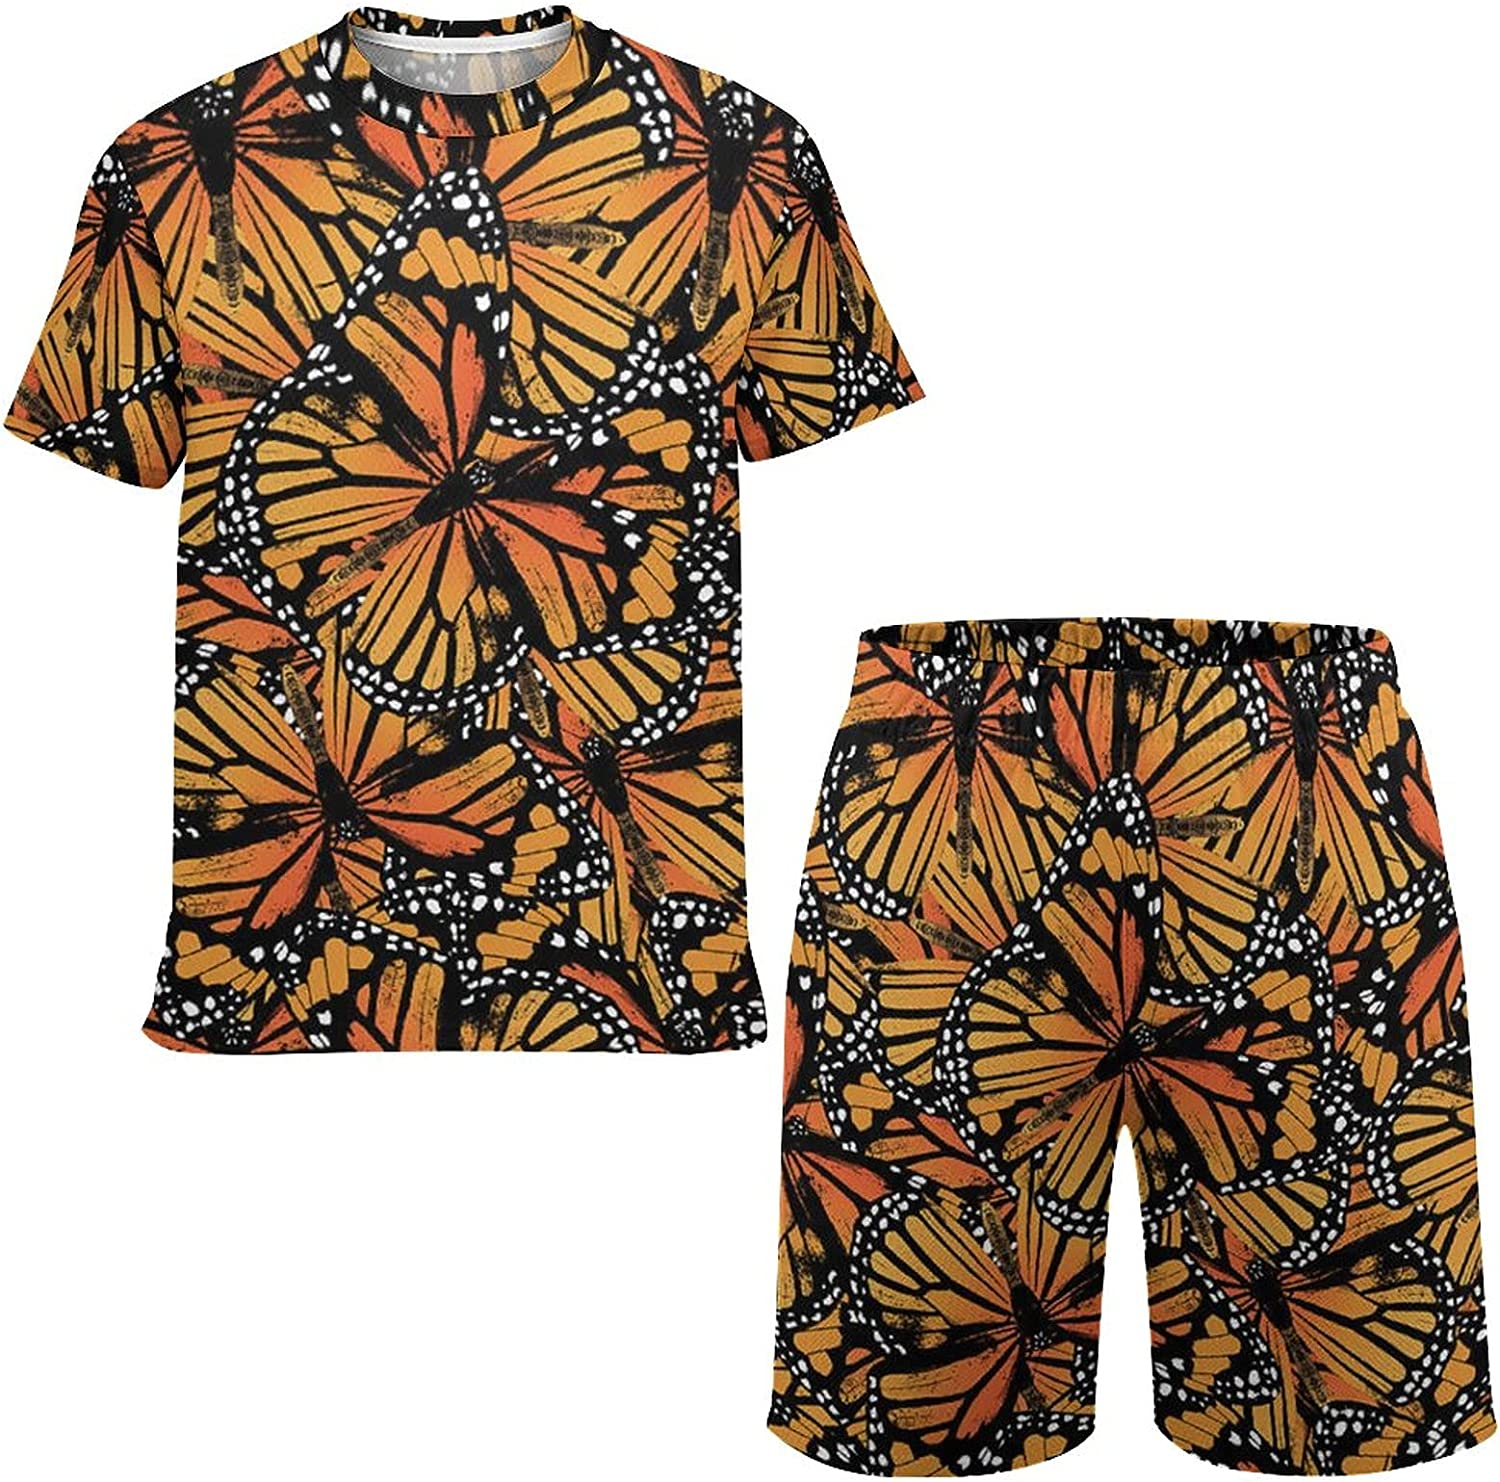 Orange Monarch Butterfly Youth Playwear Clothes Shirt and Shorts Summer Outfits for Boys Girls